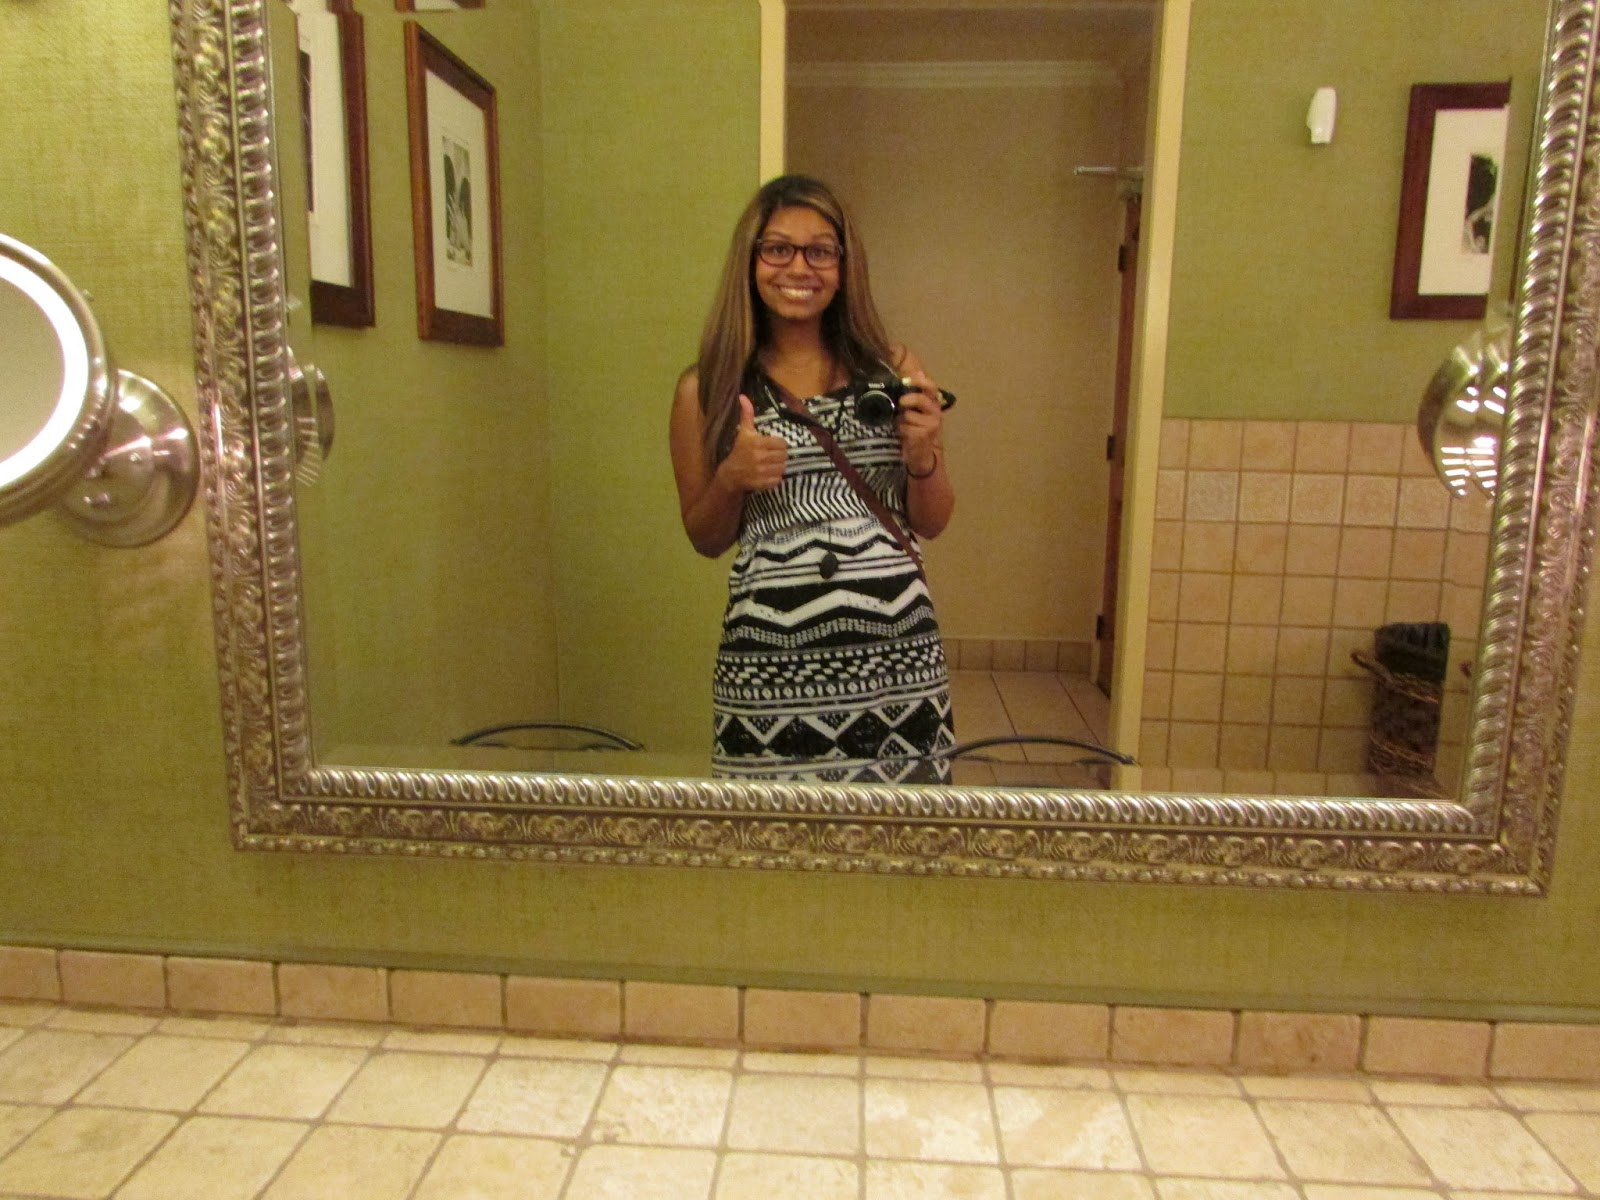 bathroom selfies gone wrong the hippest pics